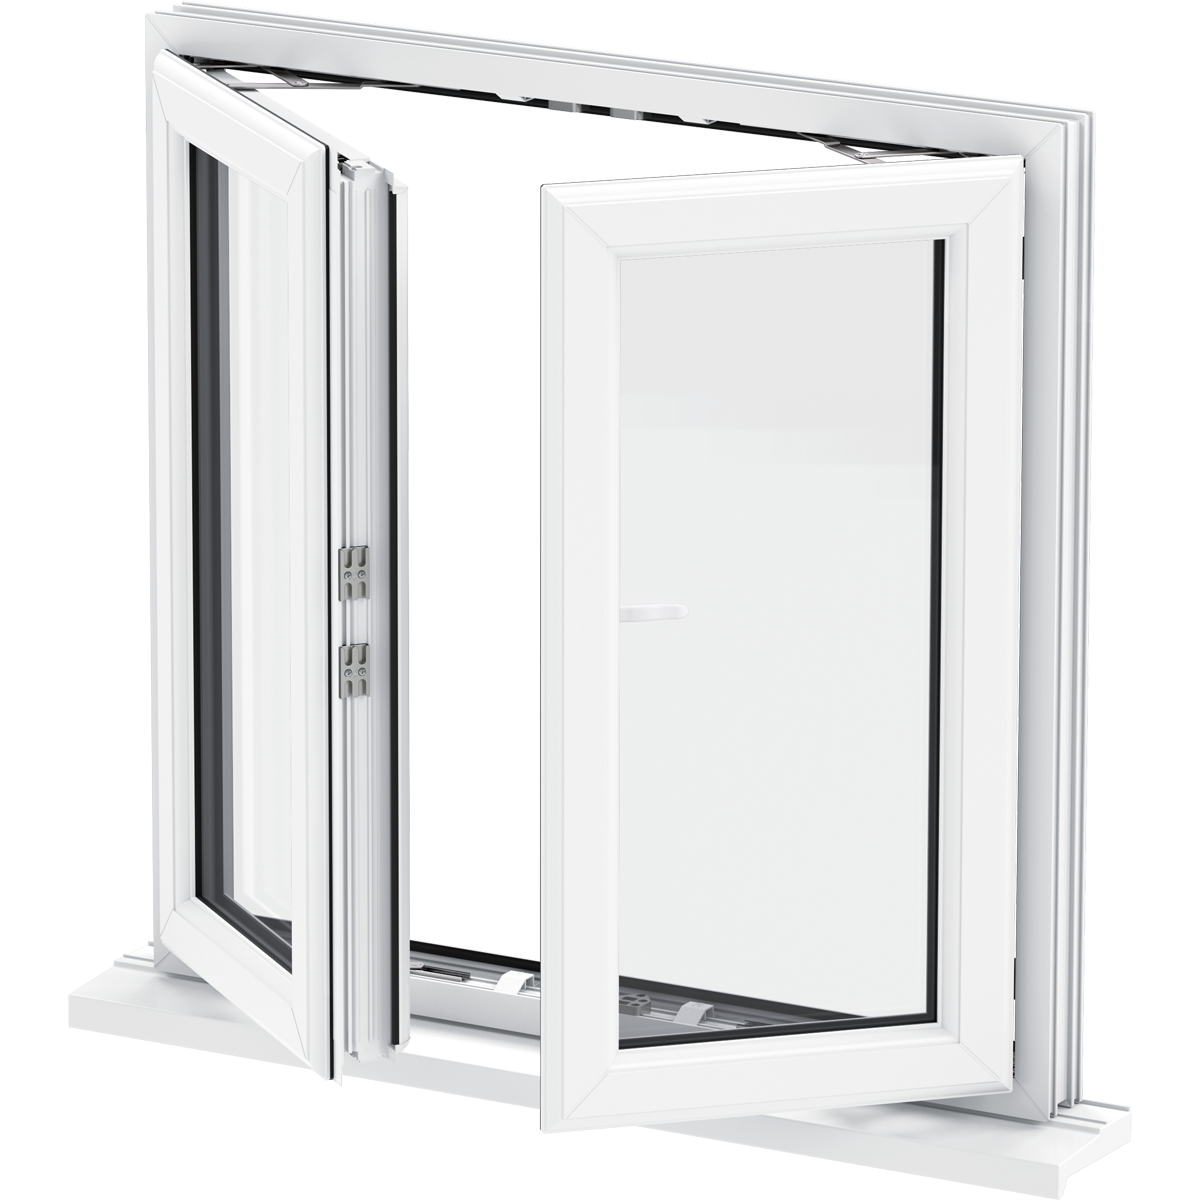 Double Glazed Windows Tucson : Upvc windows london double glazed